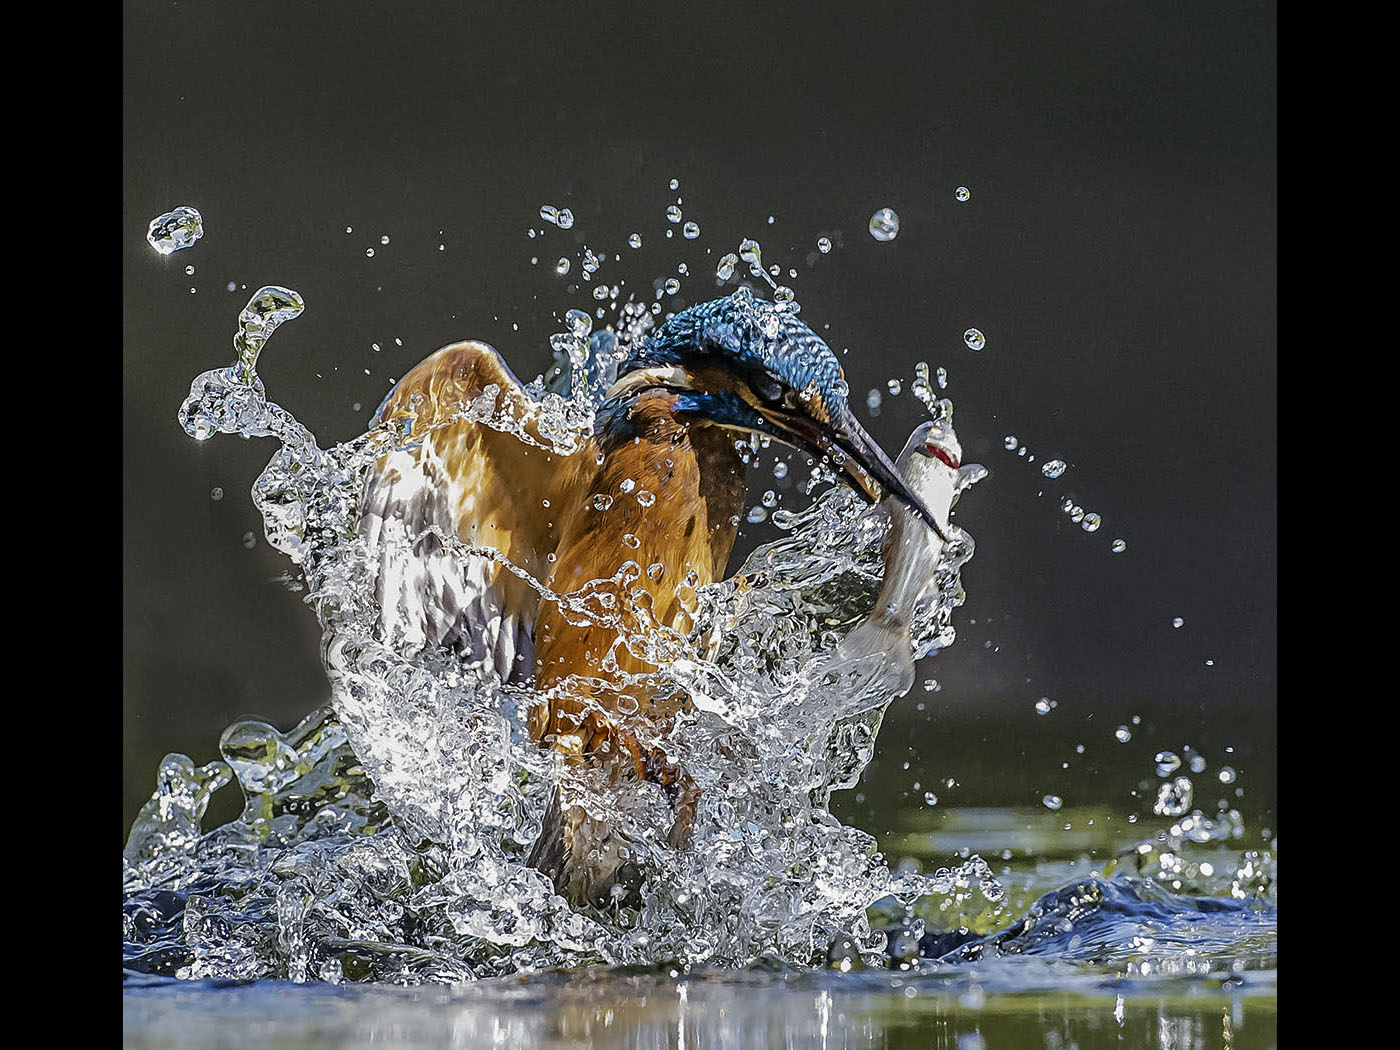 7_Kingfisher.jpg